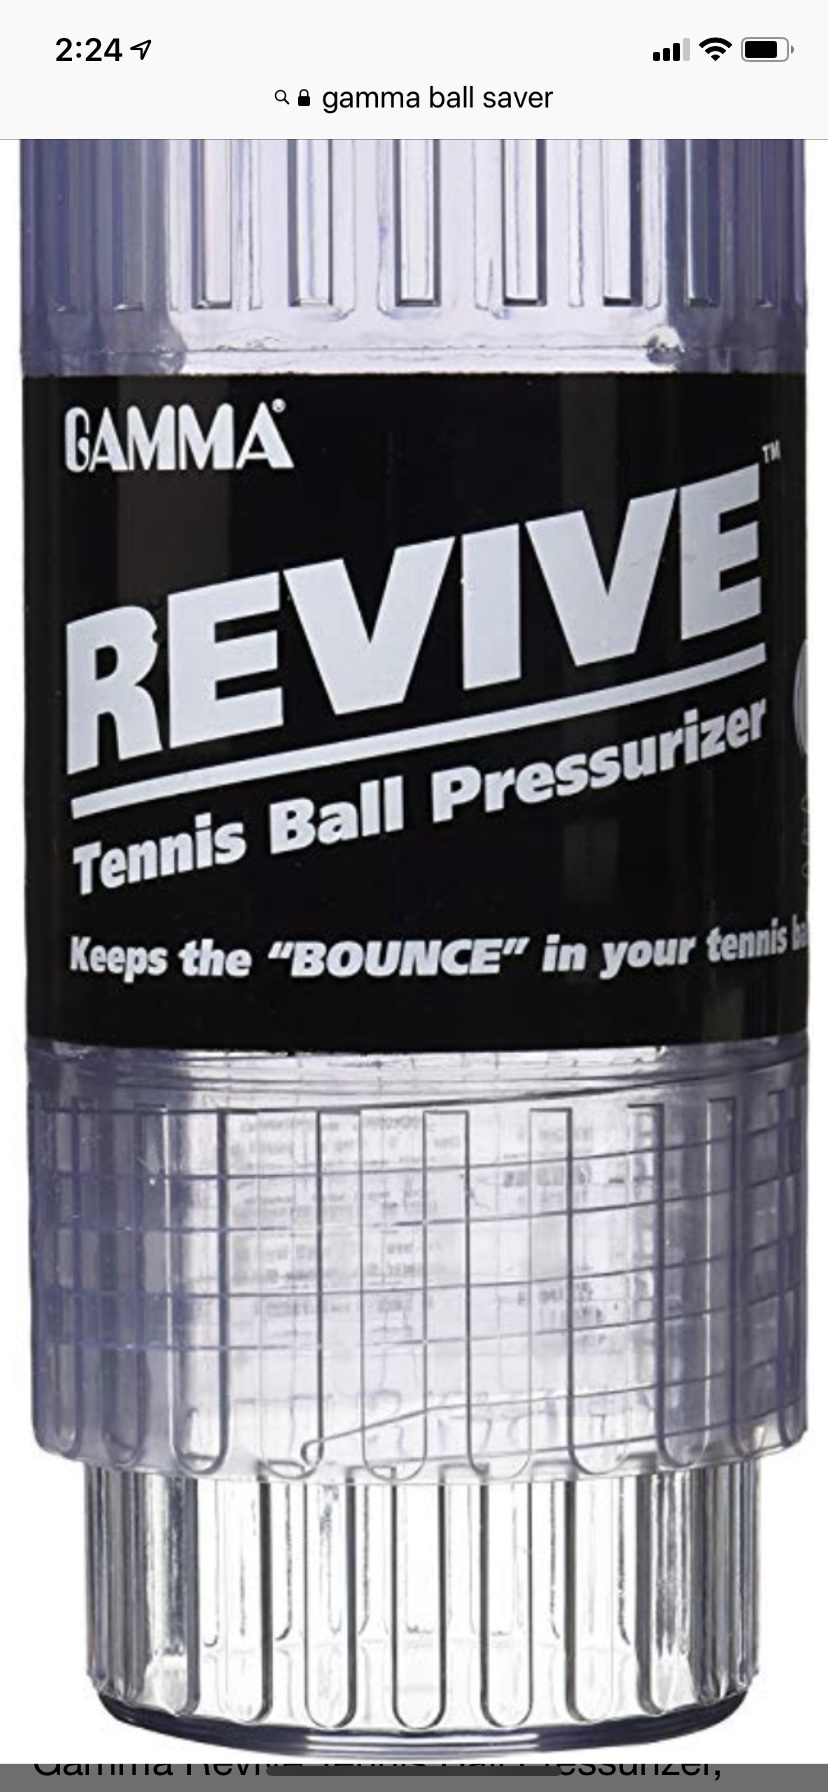 Anybody have one of these? | Talk Tennis